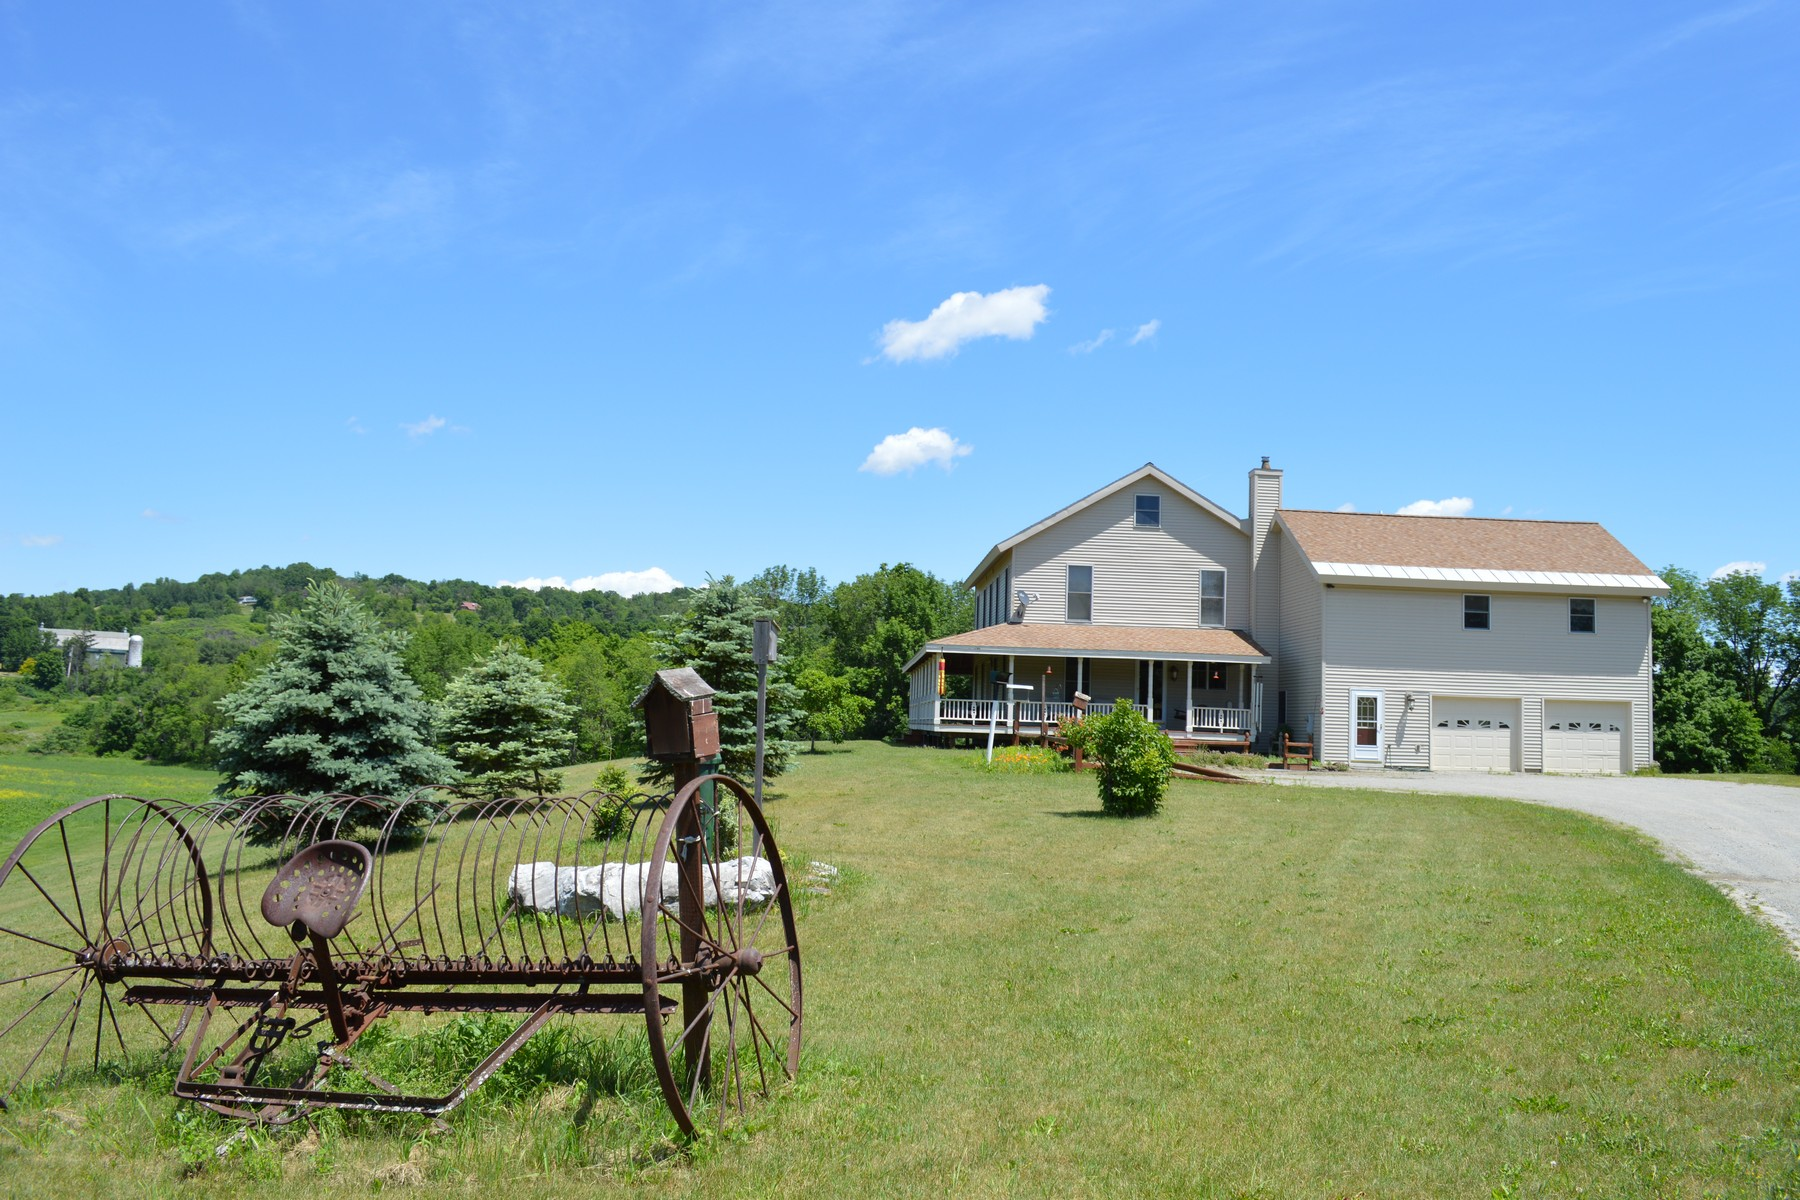 Single Family Home for Sale at Country Colonial with Organic Farm 40 Woodell Rd Middle Granville, New York 12849 United States